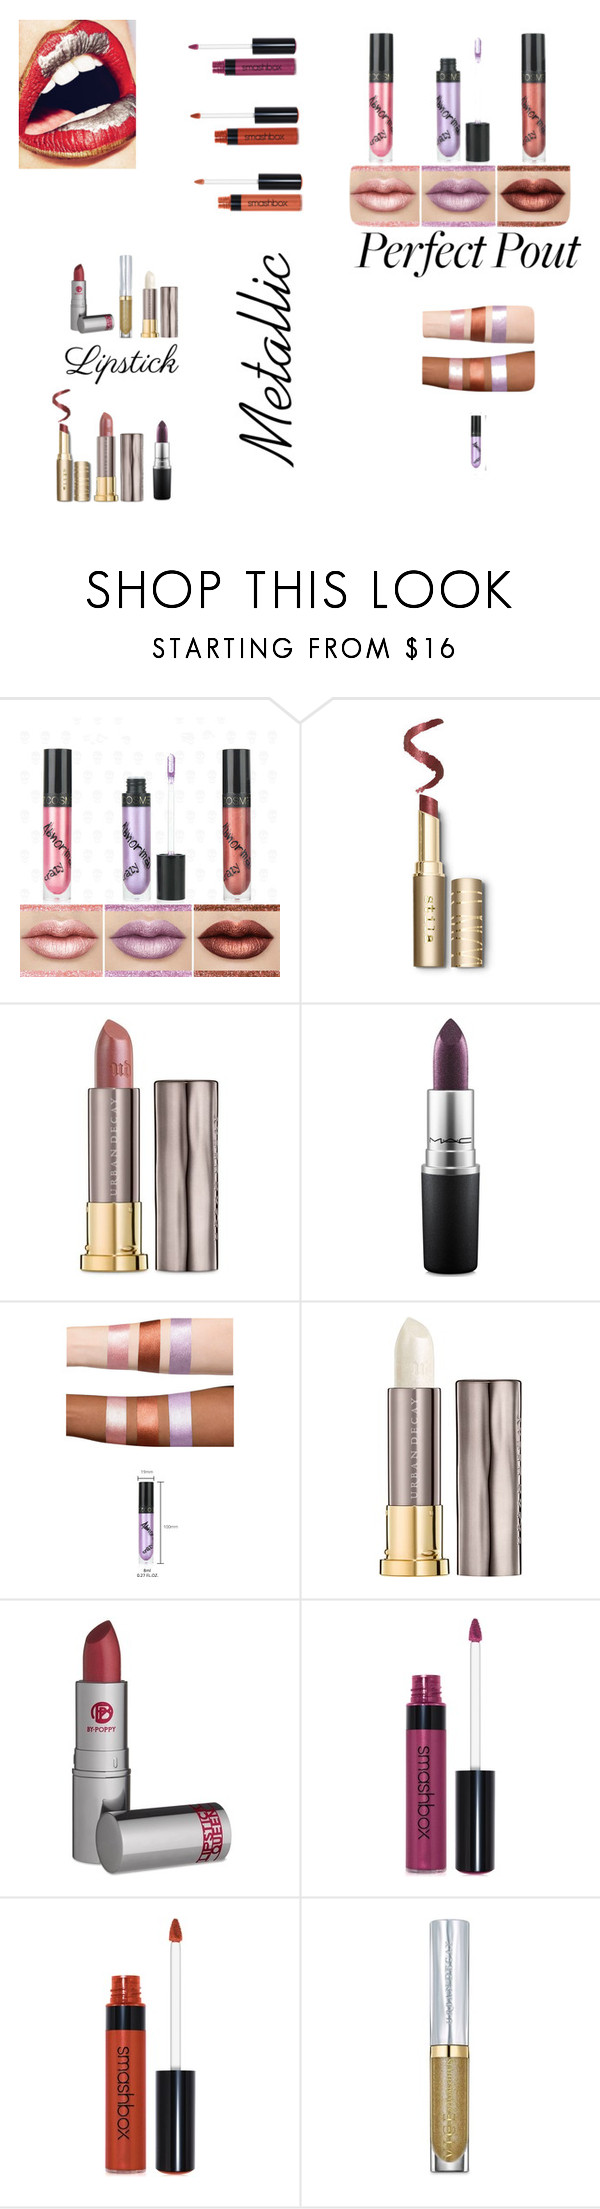 """Metallic Lips"" by jbillington ❤ liked on Polyvore featuring beauty, Urban Decay, MAC Cosmetics, Lipstick Queen, Smashbox and metalliclipstick"